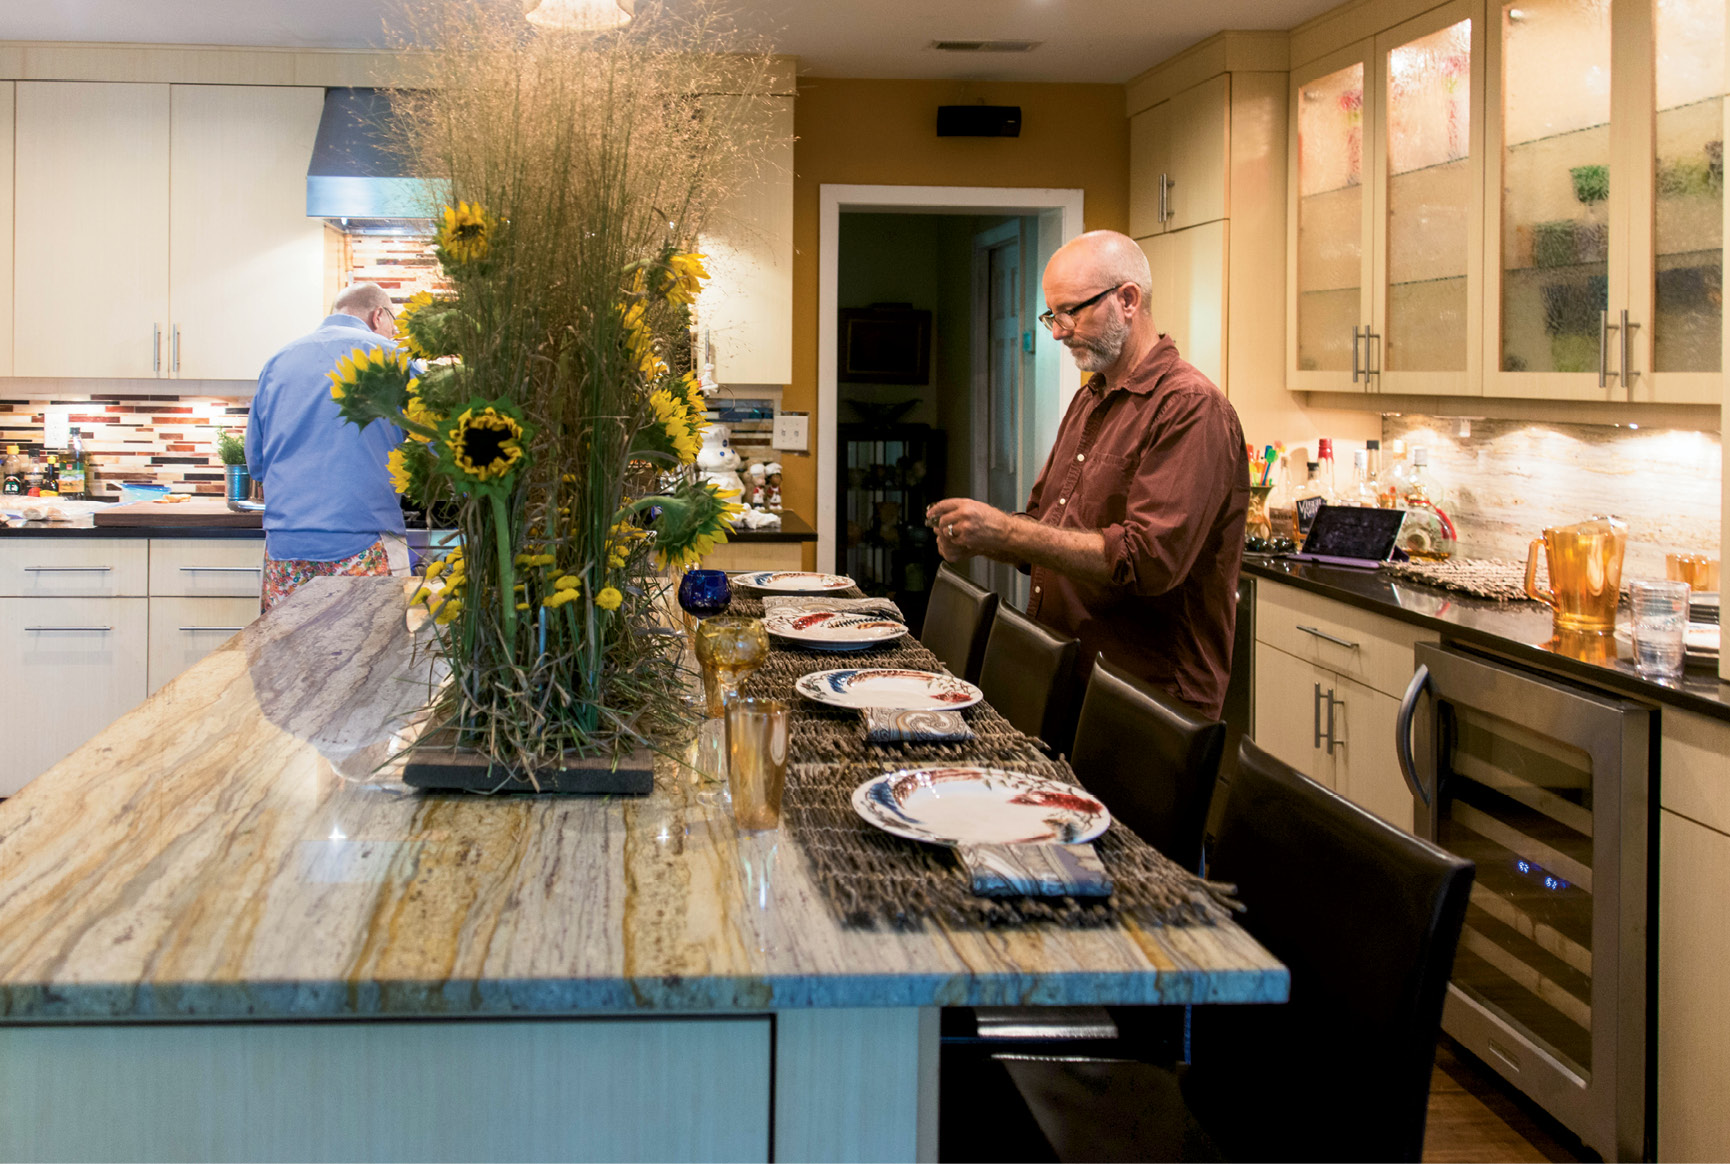 David Vagasky (left) preps the meal while Jim Martin sets the dining space.